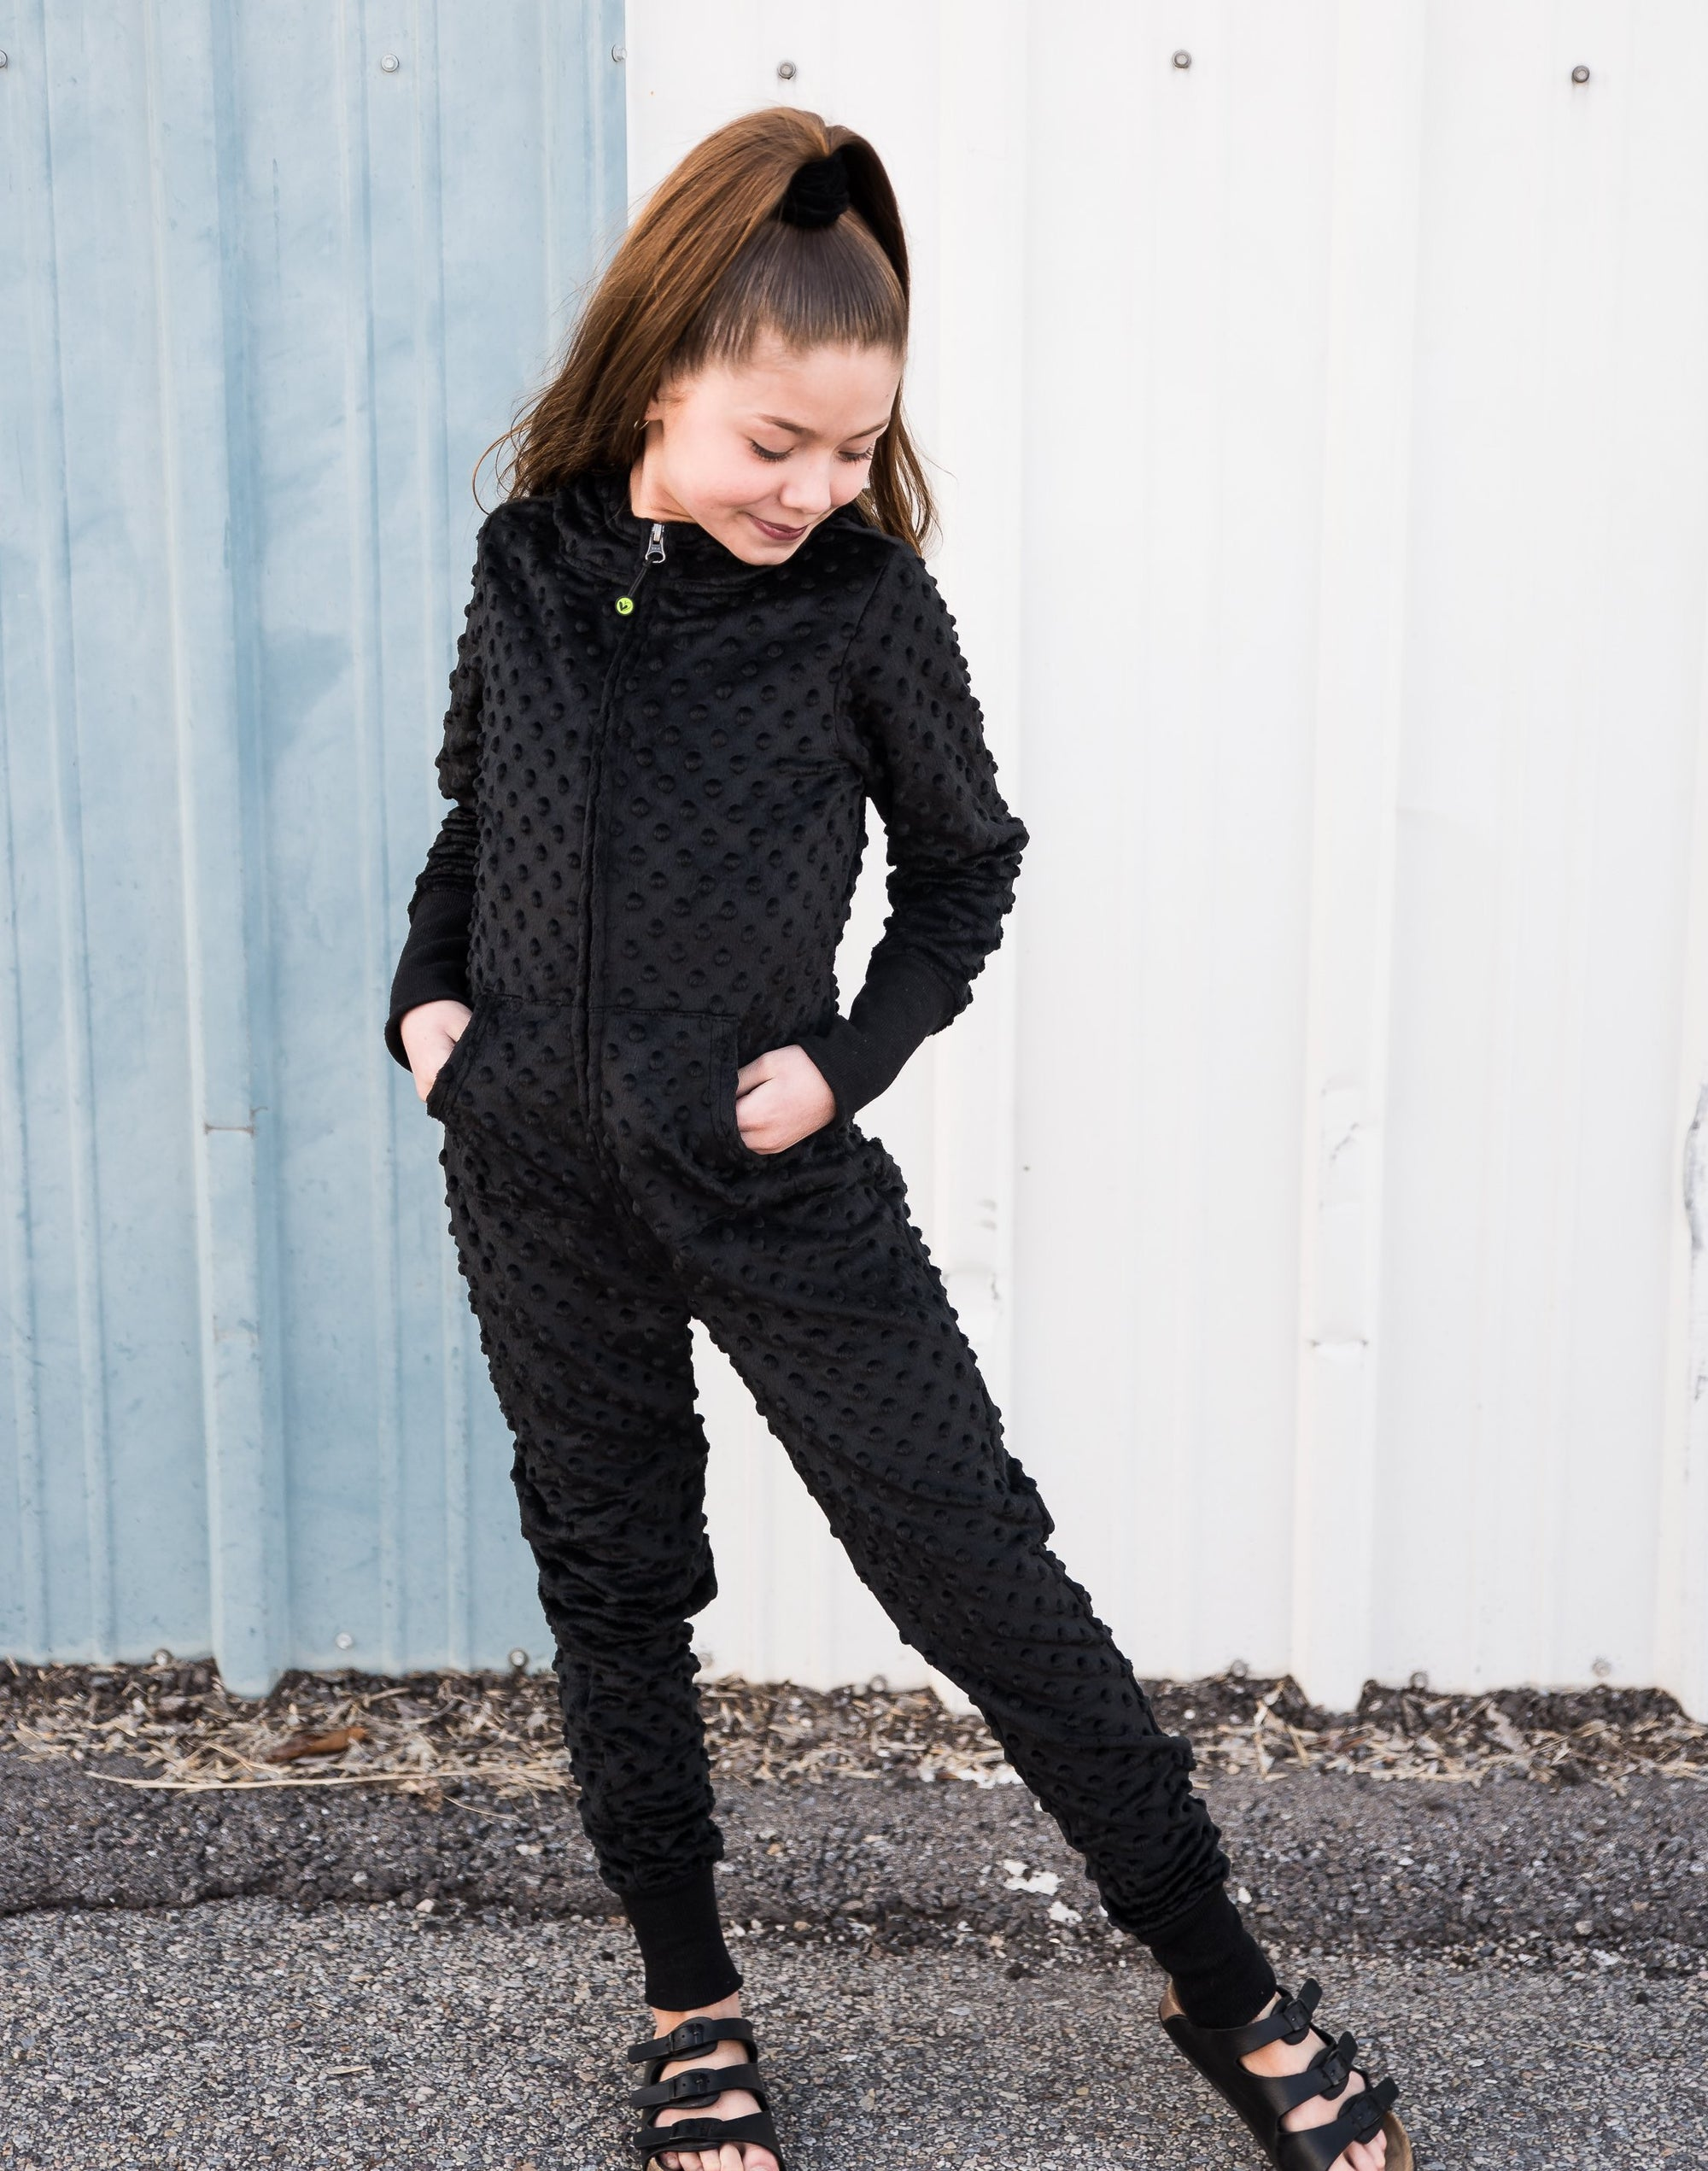 Minky bubble onesie - Black Duckthreads